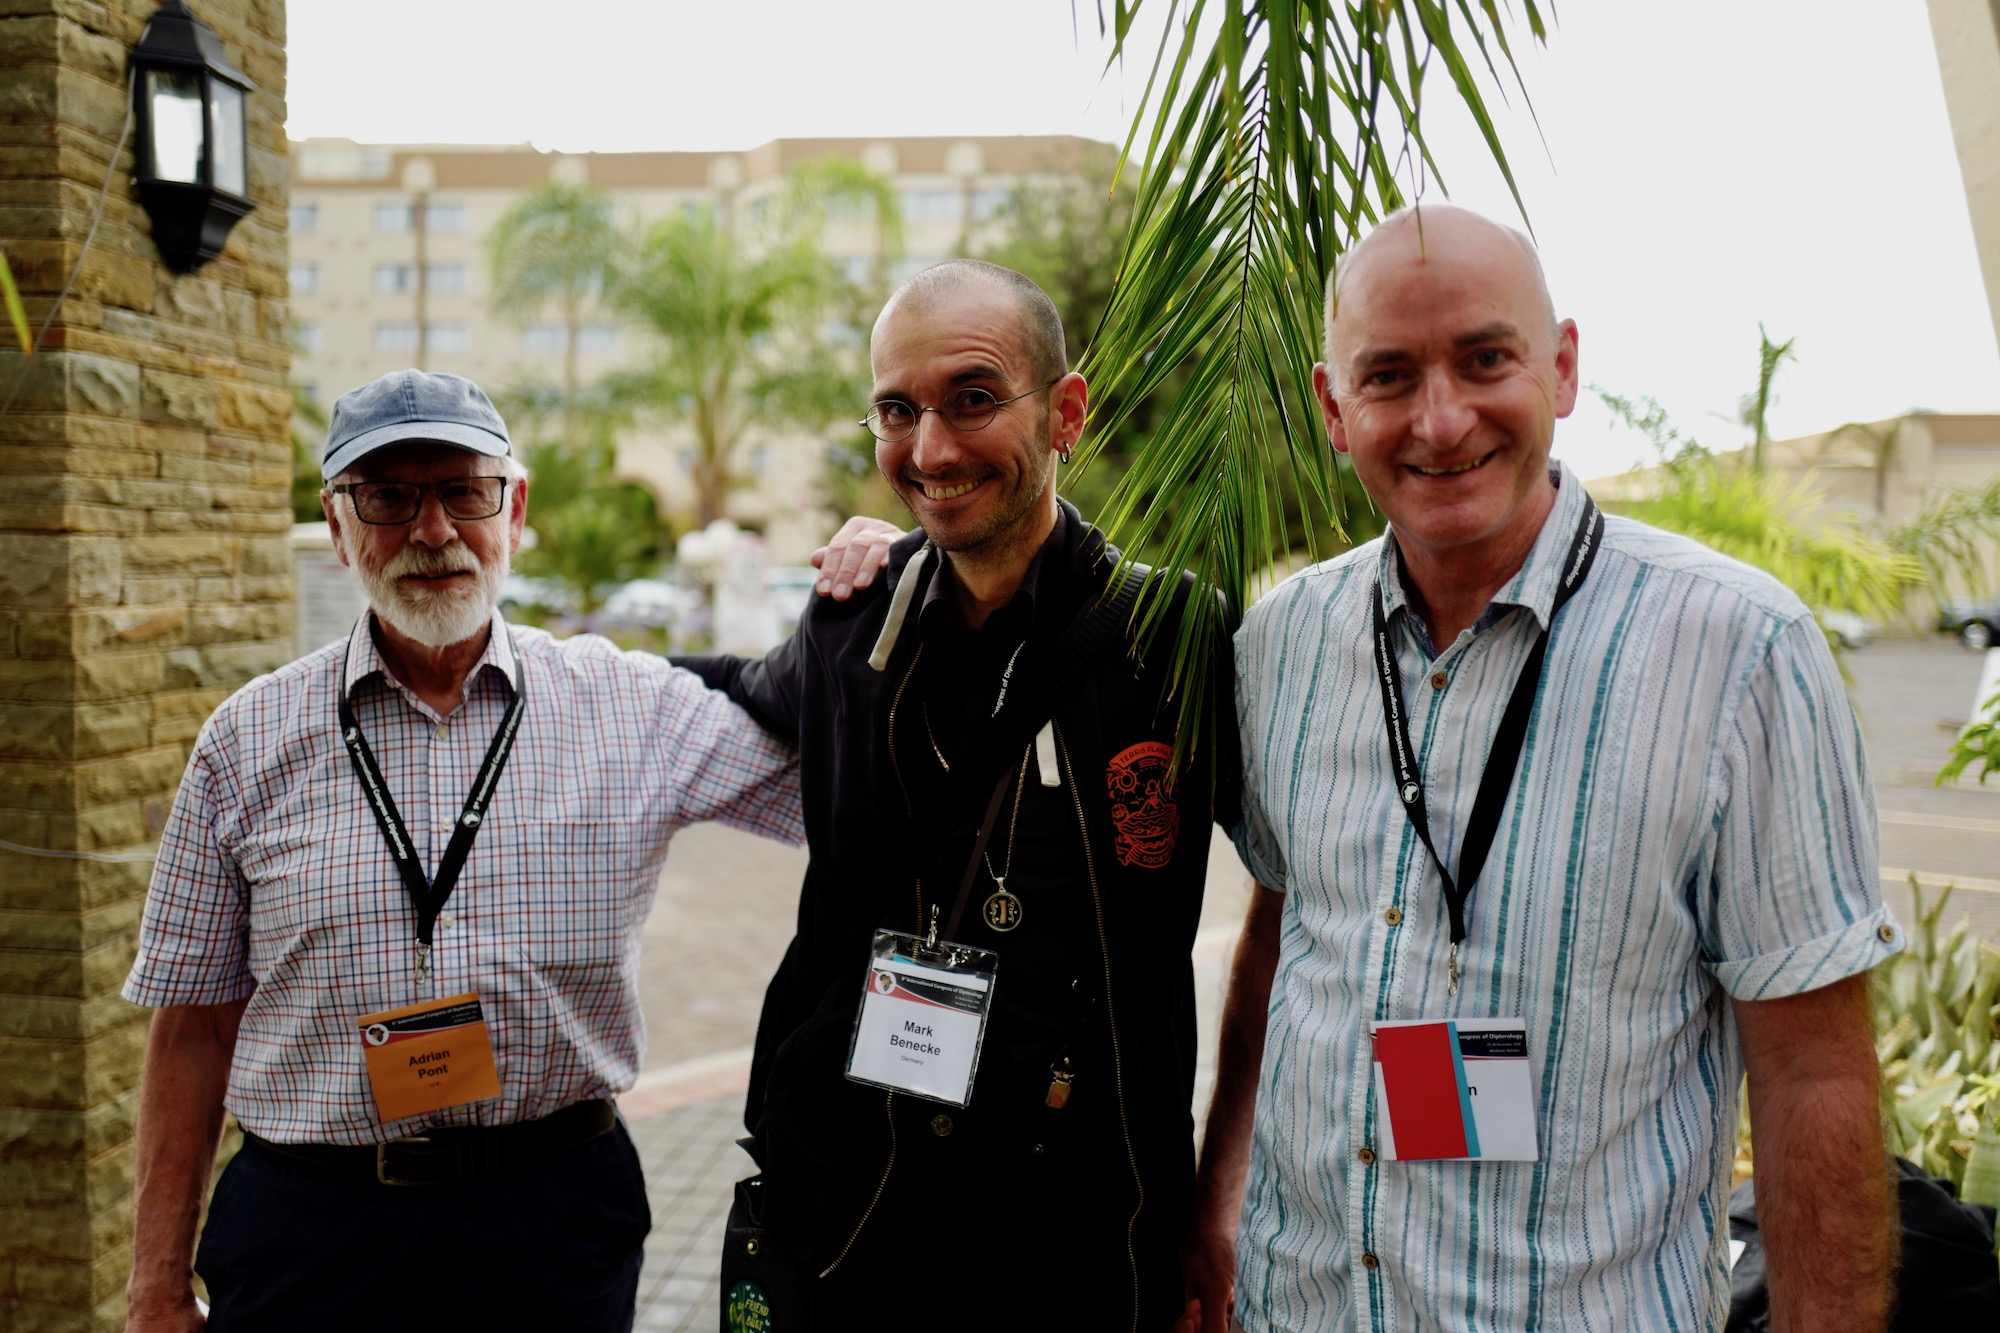 mark_benecke_ICD9_dipterology_world_congress_windhoeck_namibia - 48.jpg